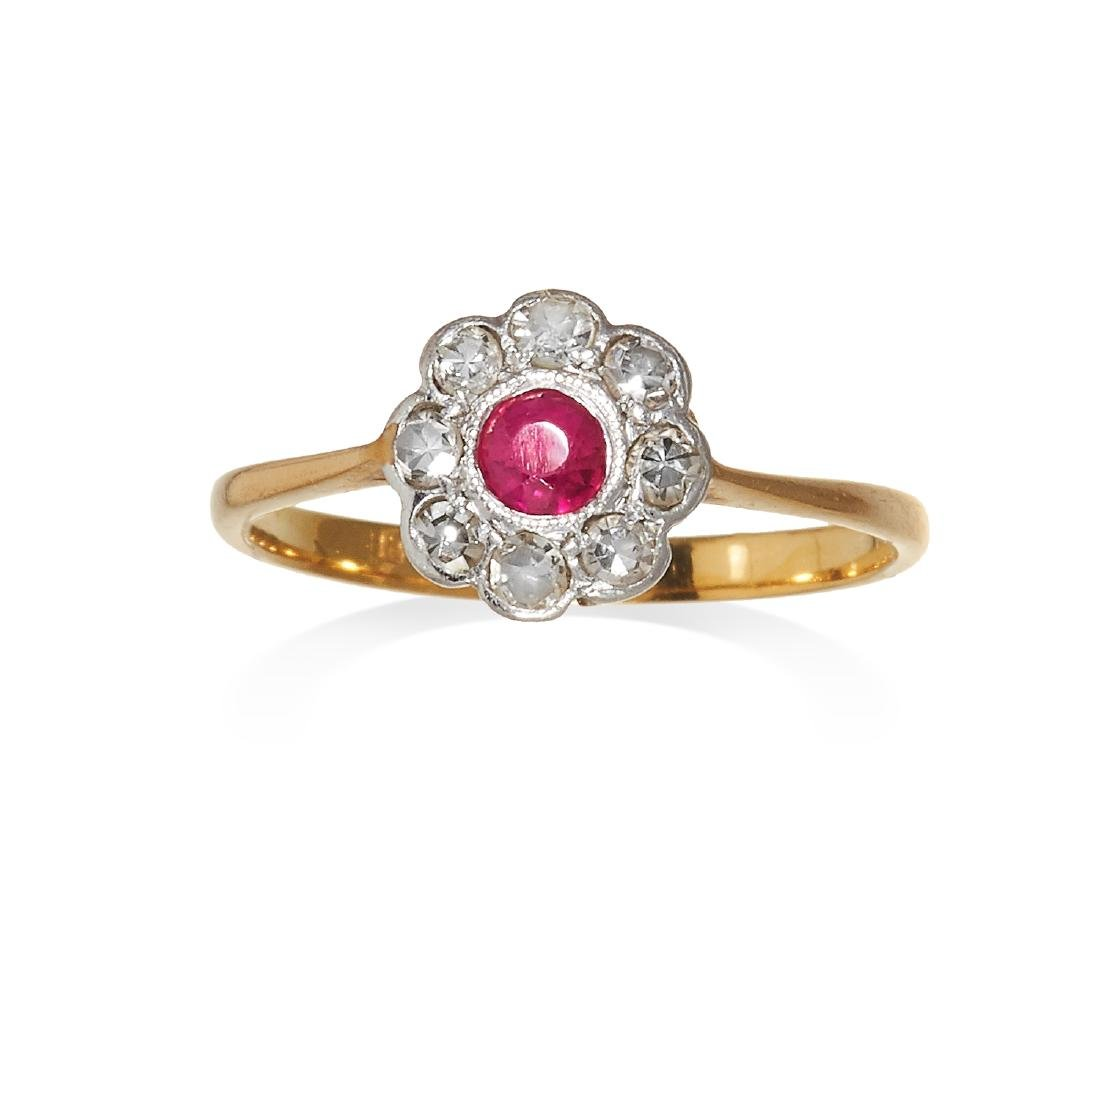 AN ANTIQUE RUBY AND DIAMOND CLUSTER RING in 18ct gold,